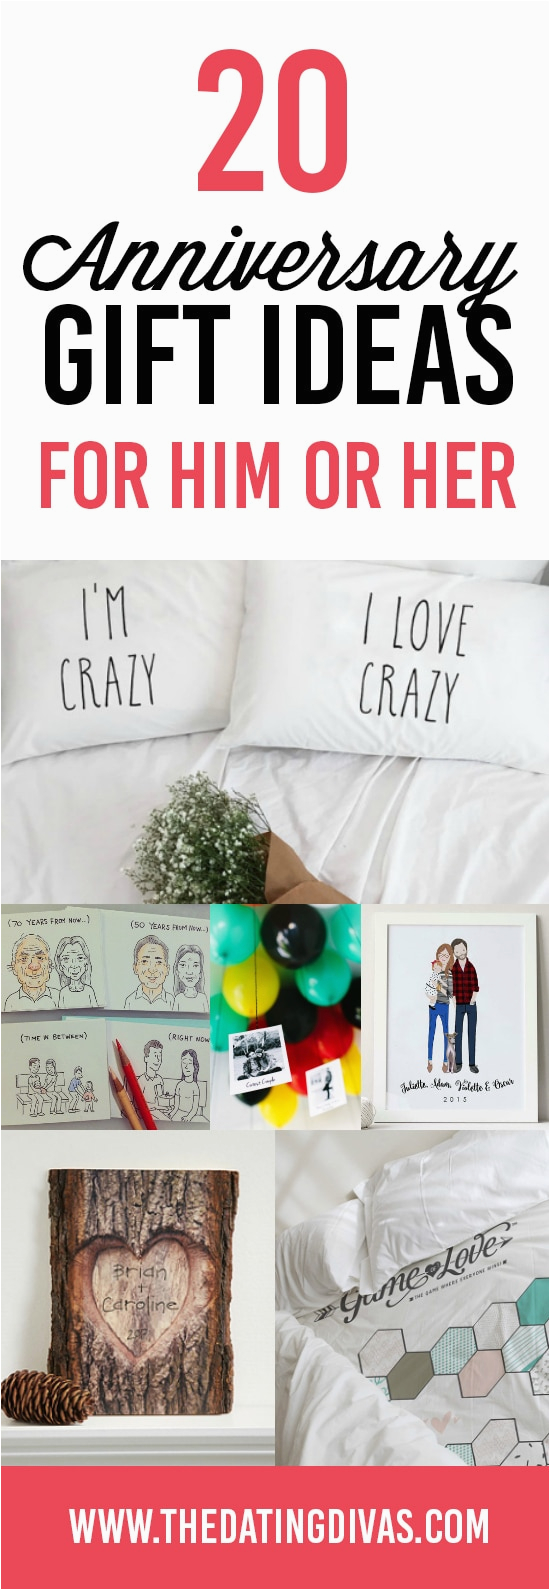 Unique Ideas for Birthday Gifts for Him Anniversary Gift Ideas